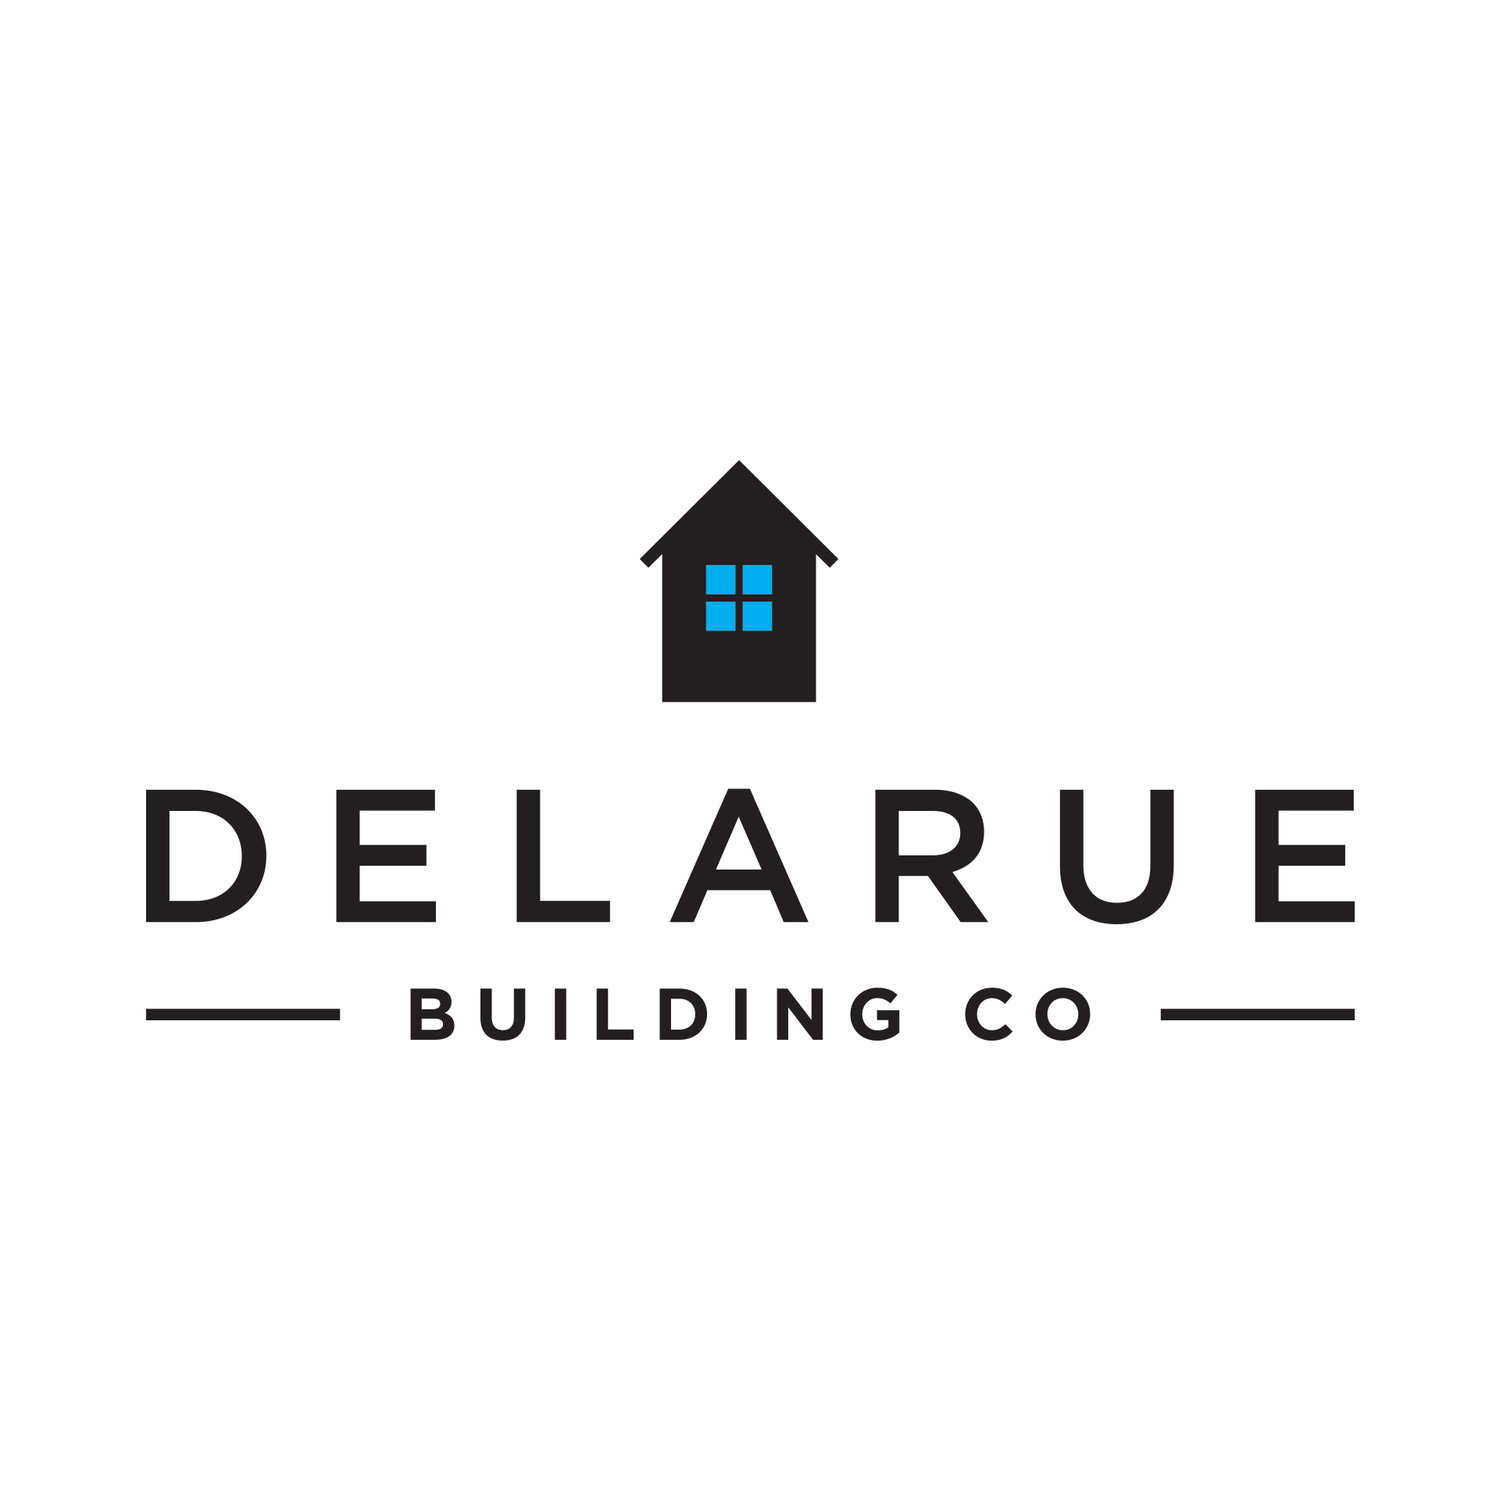 DeLarue Building Co.